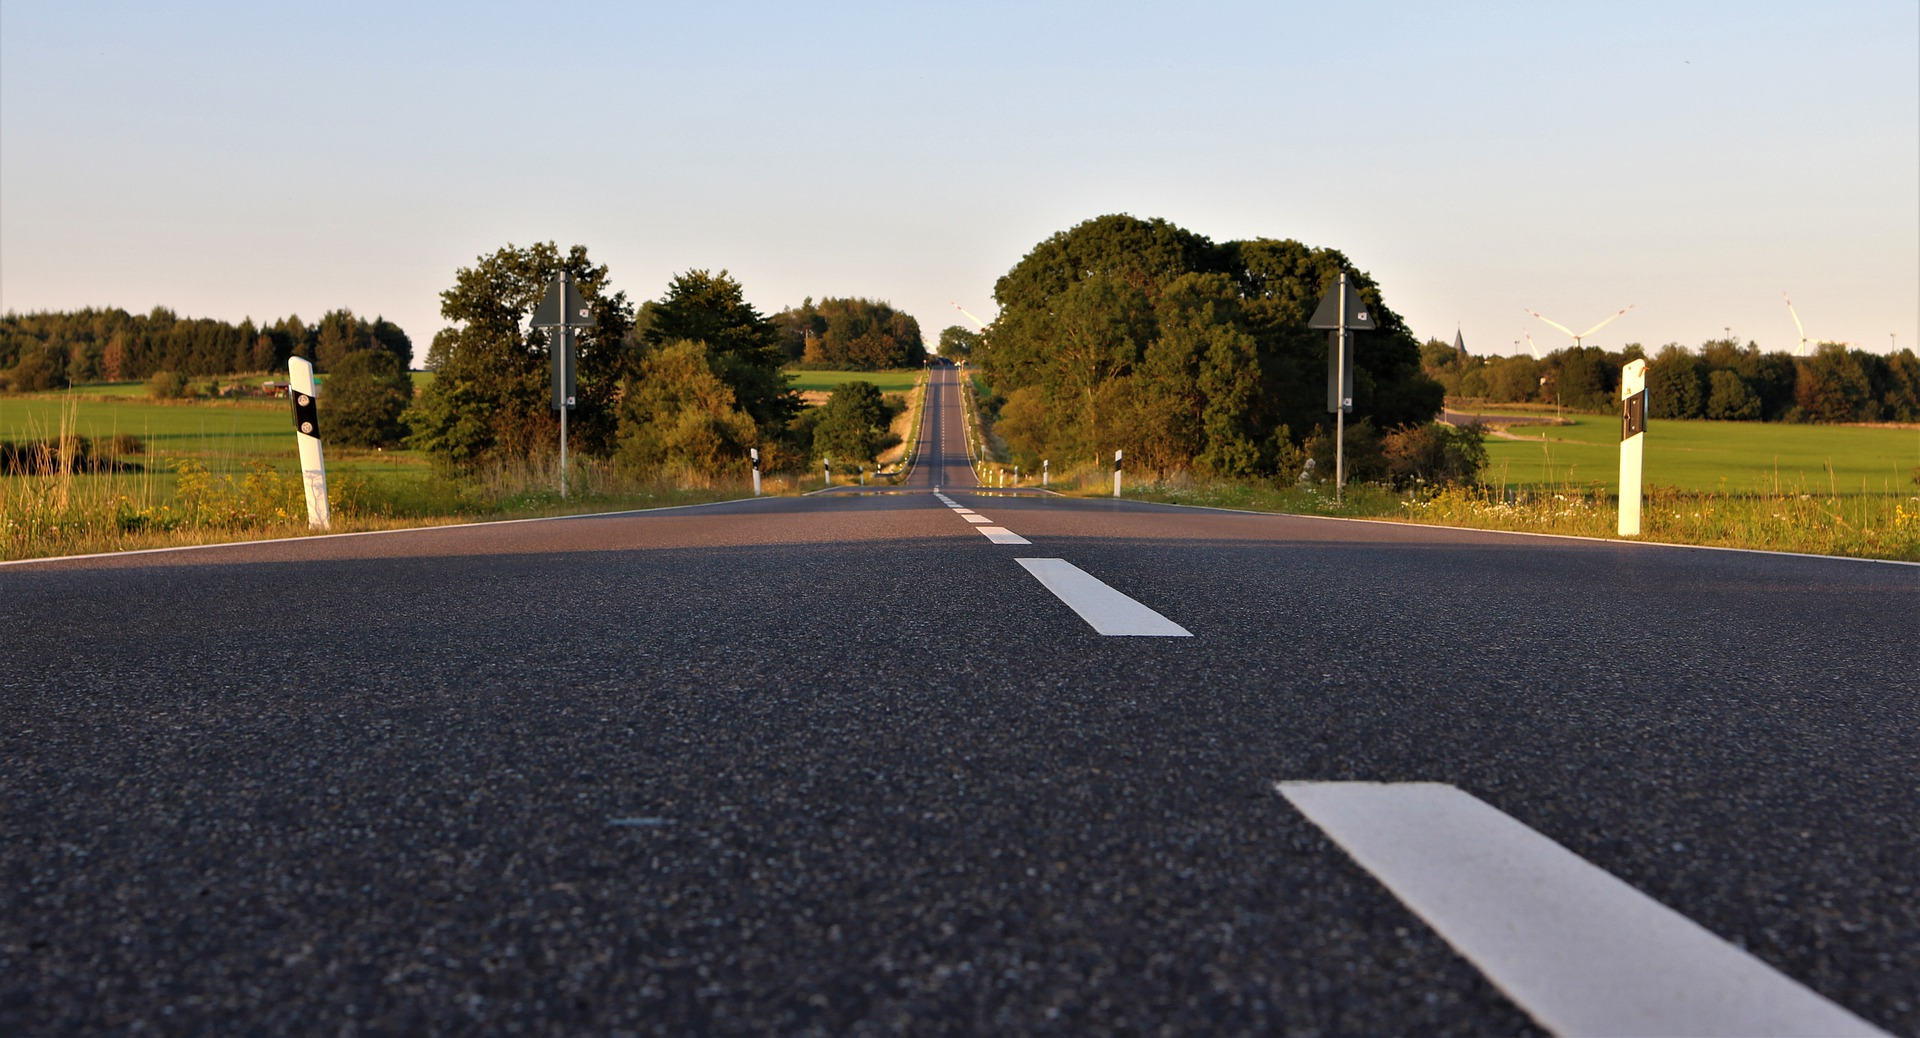 frog-perspective-on-the-federal-road-4432526_1920